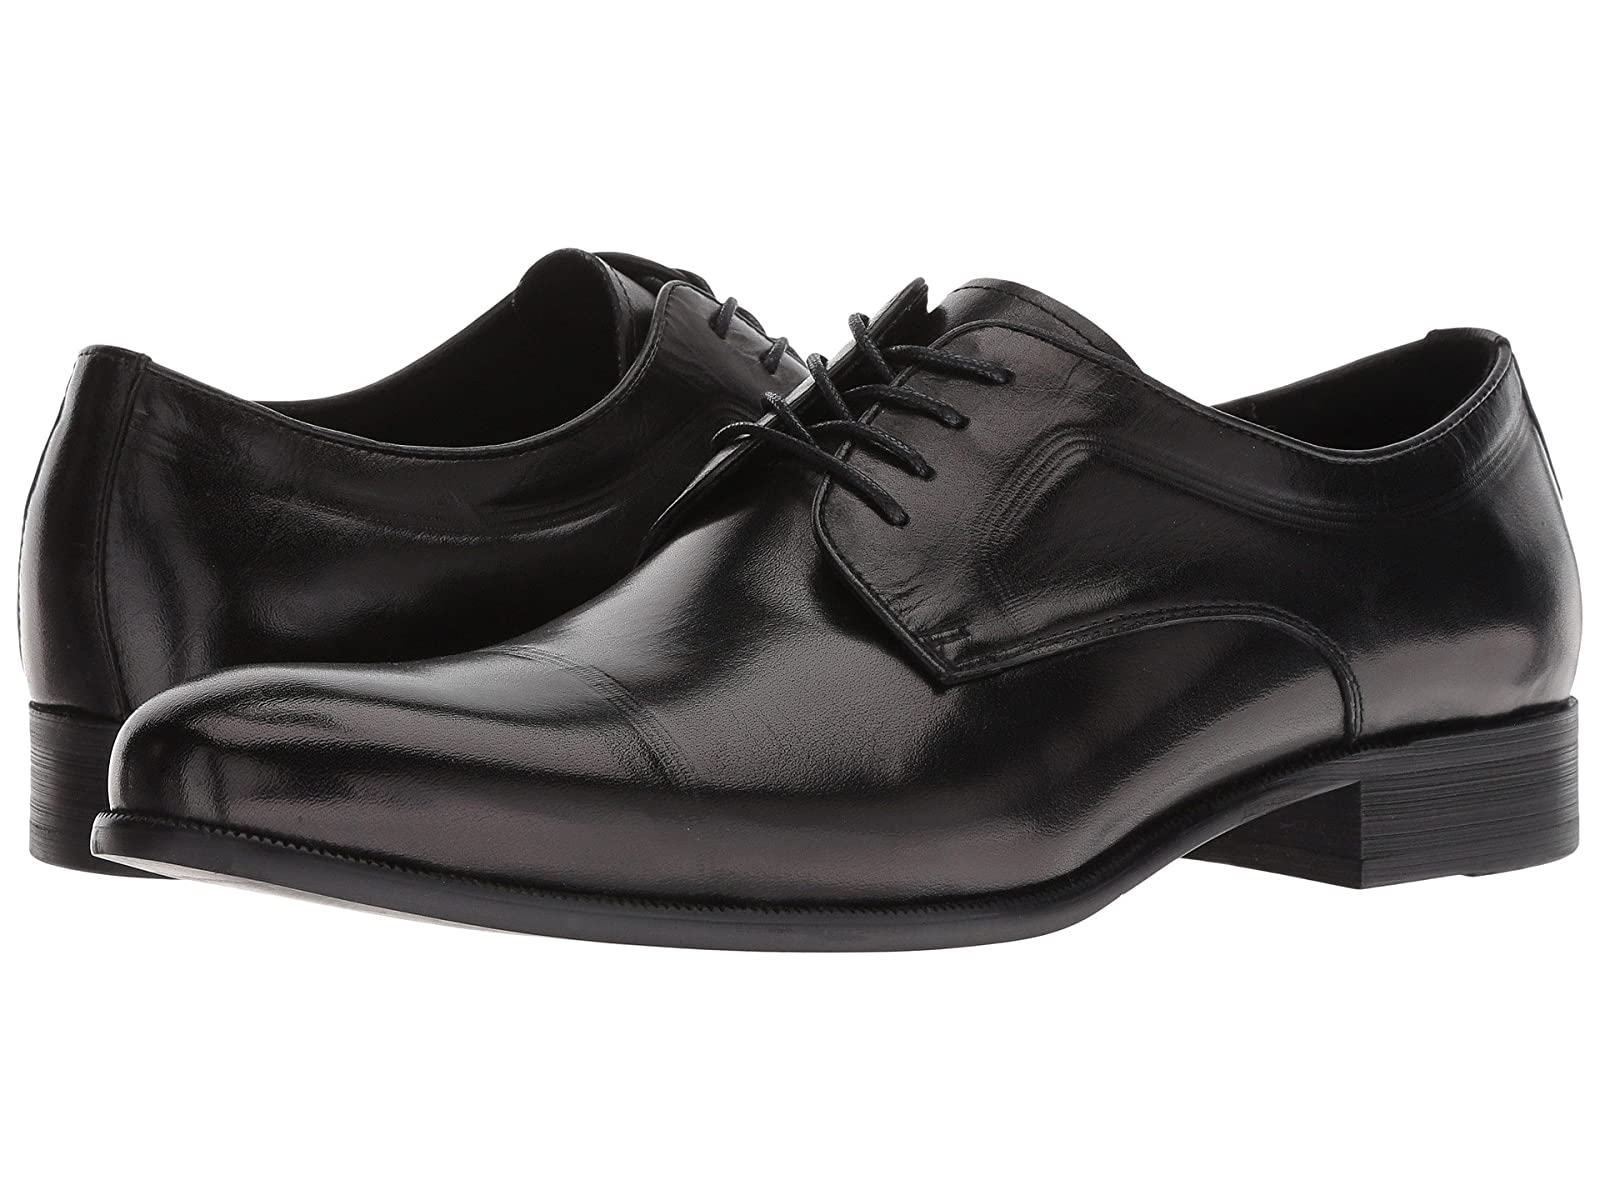 Kenneth Cole New York Chief Cap BAtmospheric grades have affordable shoes